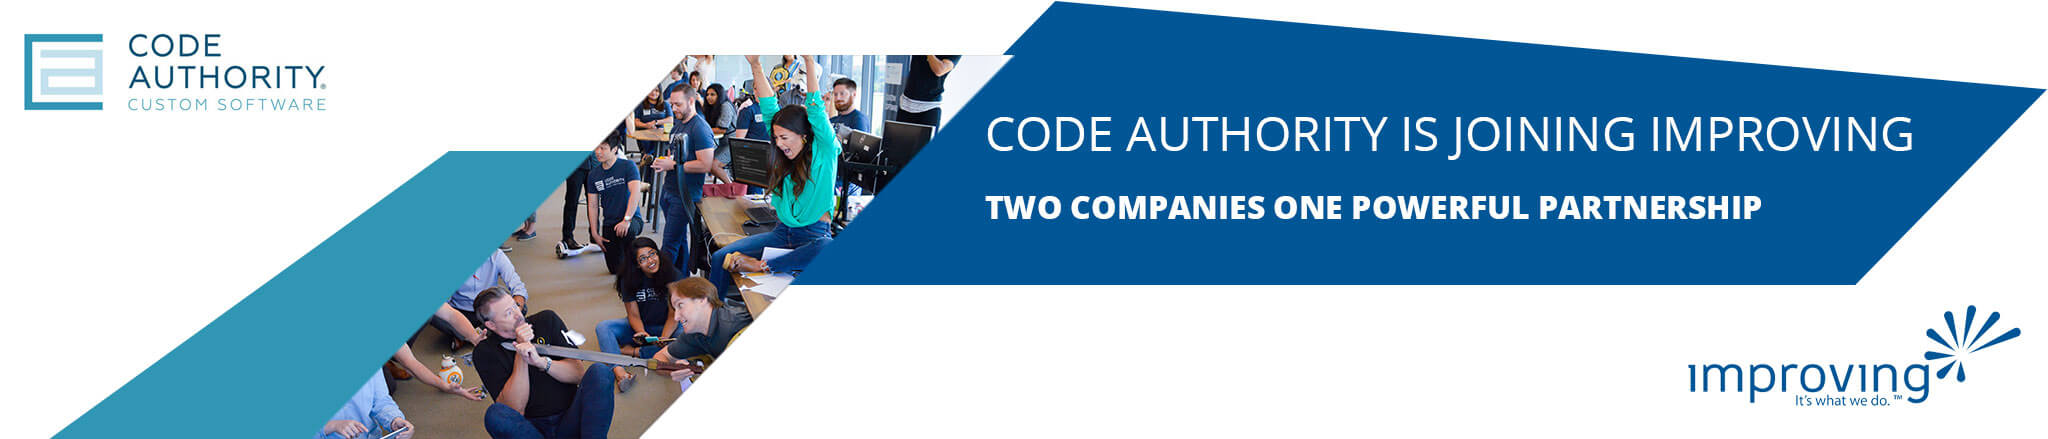 Code Authority and Improving are joining forces to support the software needs of DFW.